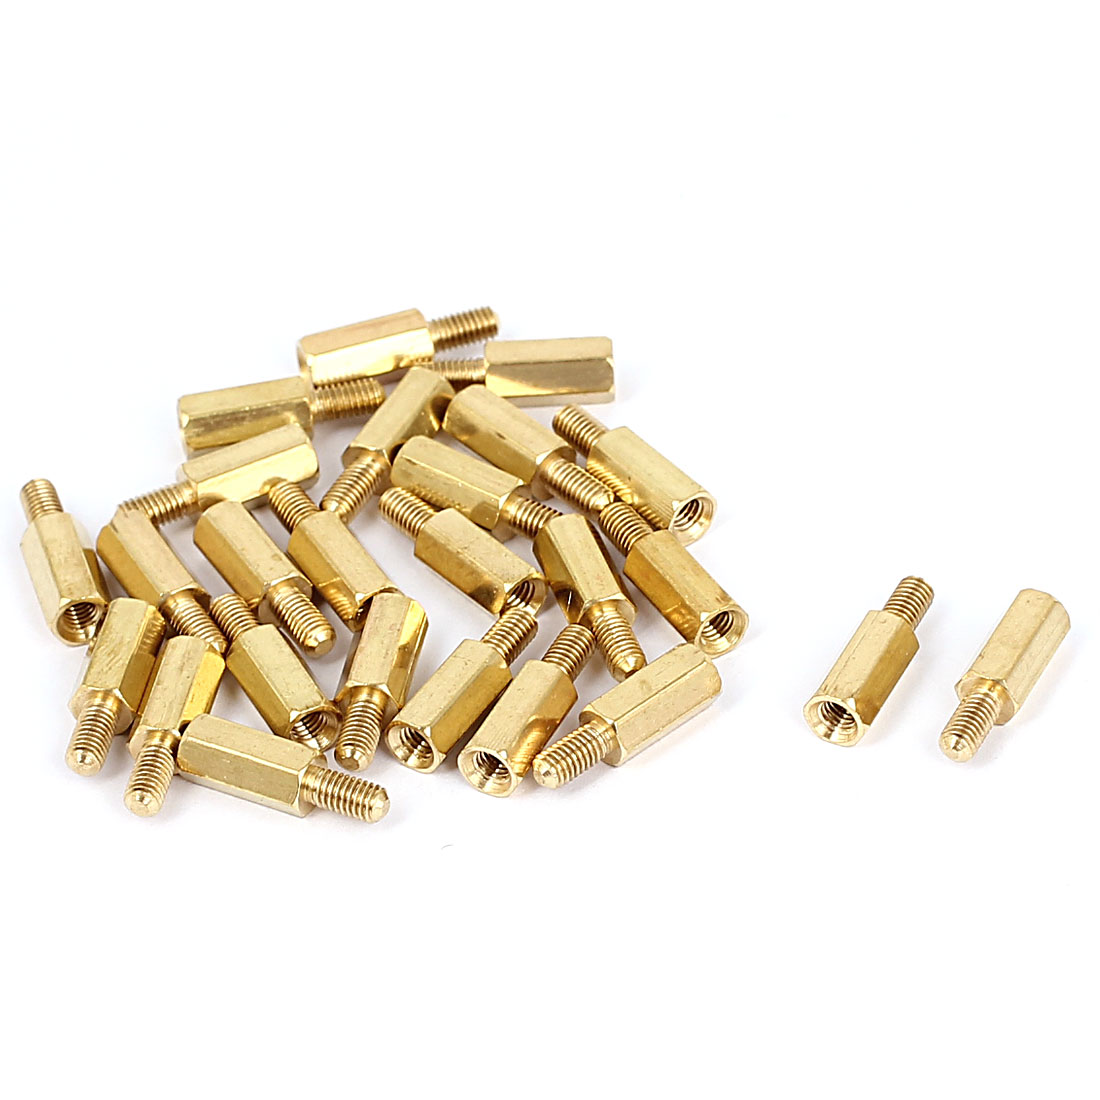 M3x10+6mm Female/Male Thread Brass Hex Standoff Pillar Spacer Coupler Nut 25pcs